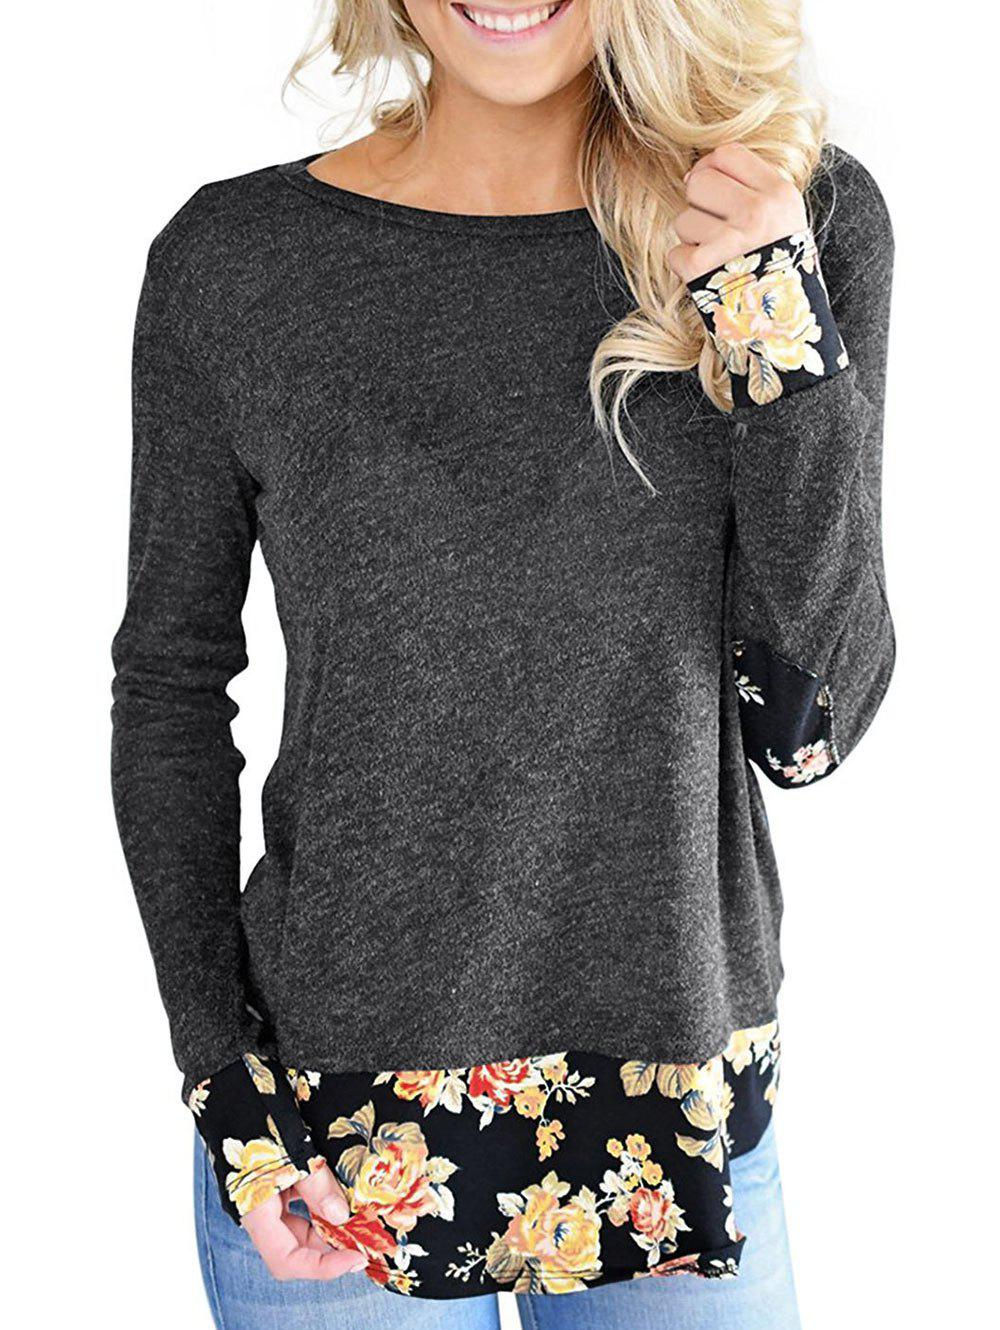 Affordable Flower Print Hem Tunic Tee